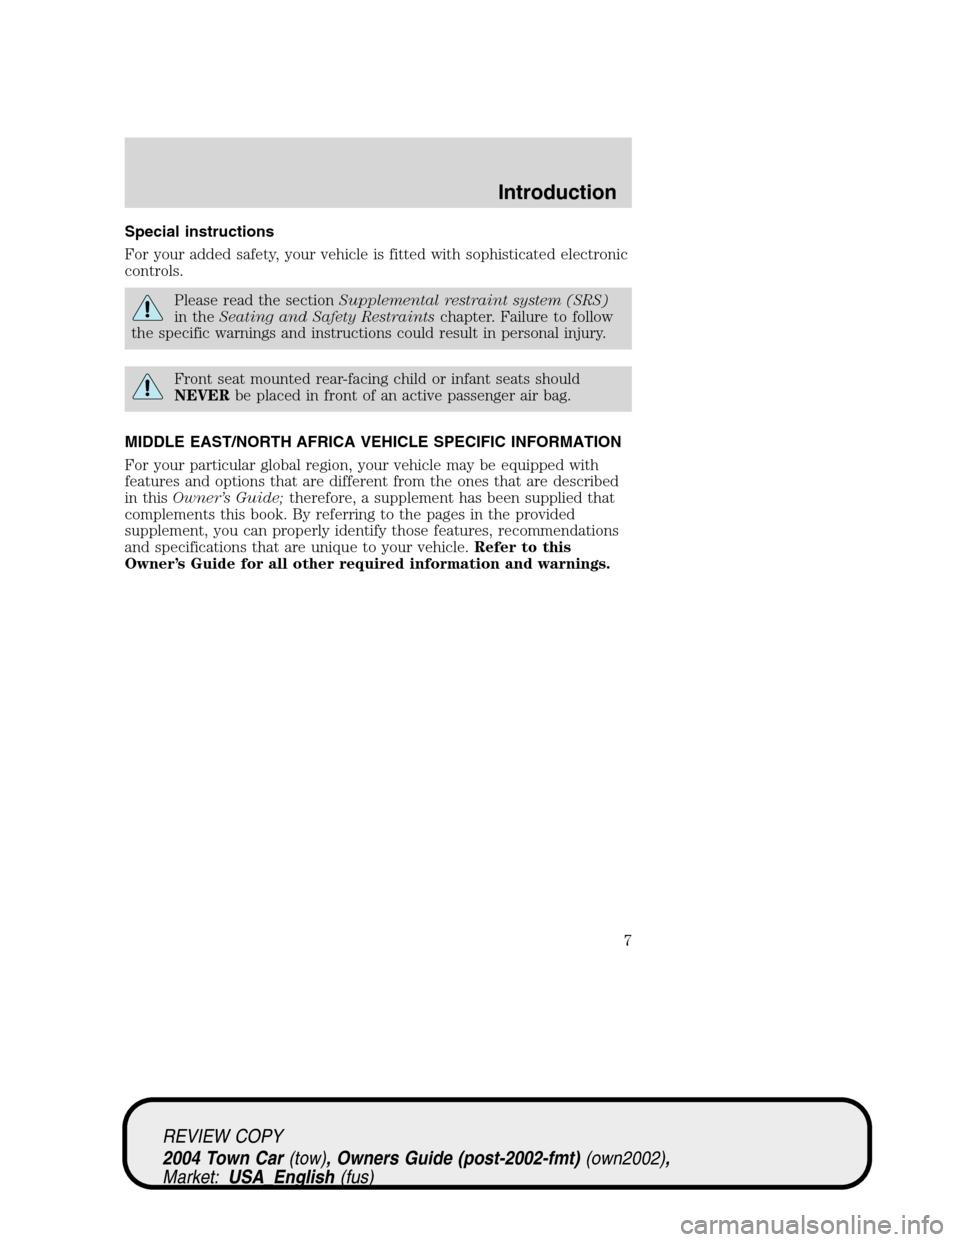 LINCOLN TOWN CAR 2004  Owners Manual, Page 7